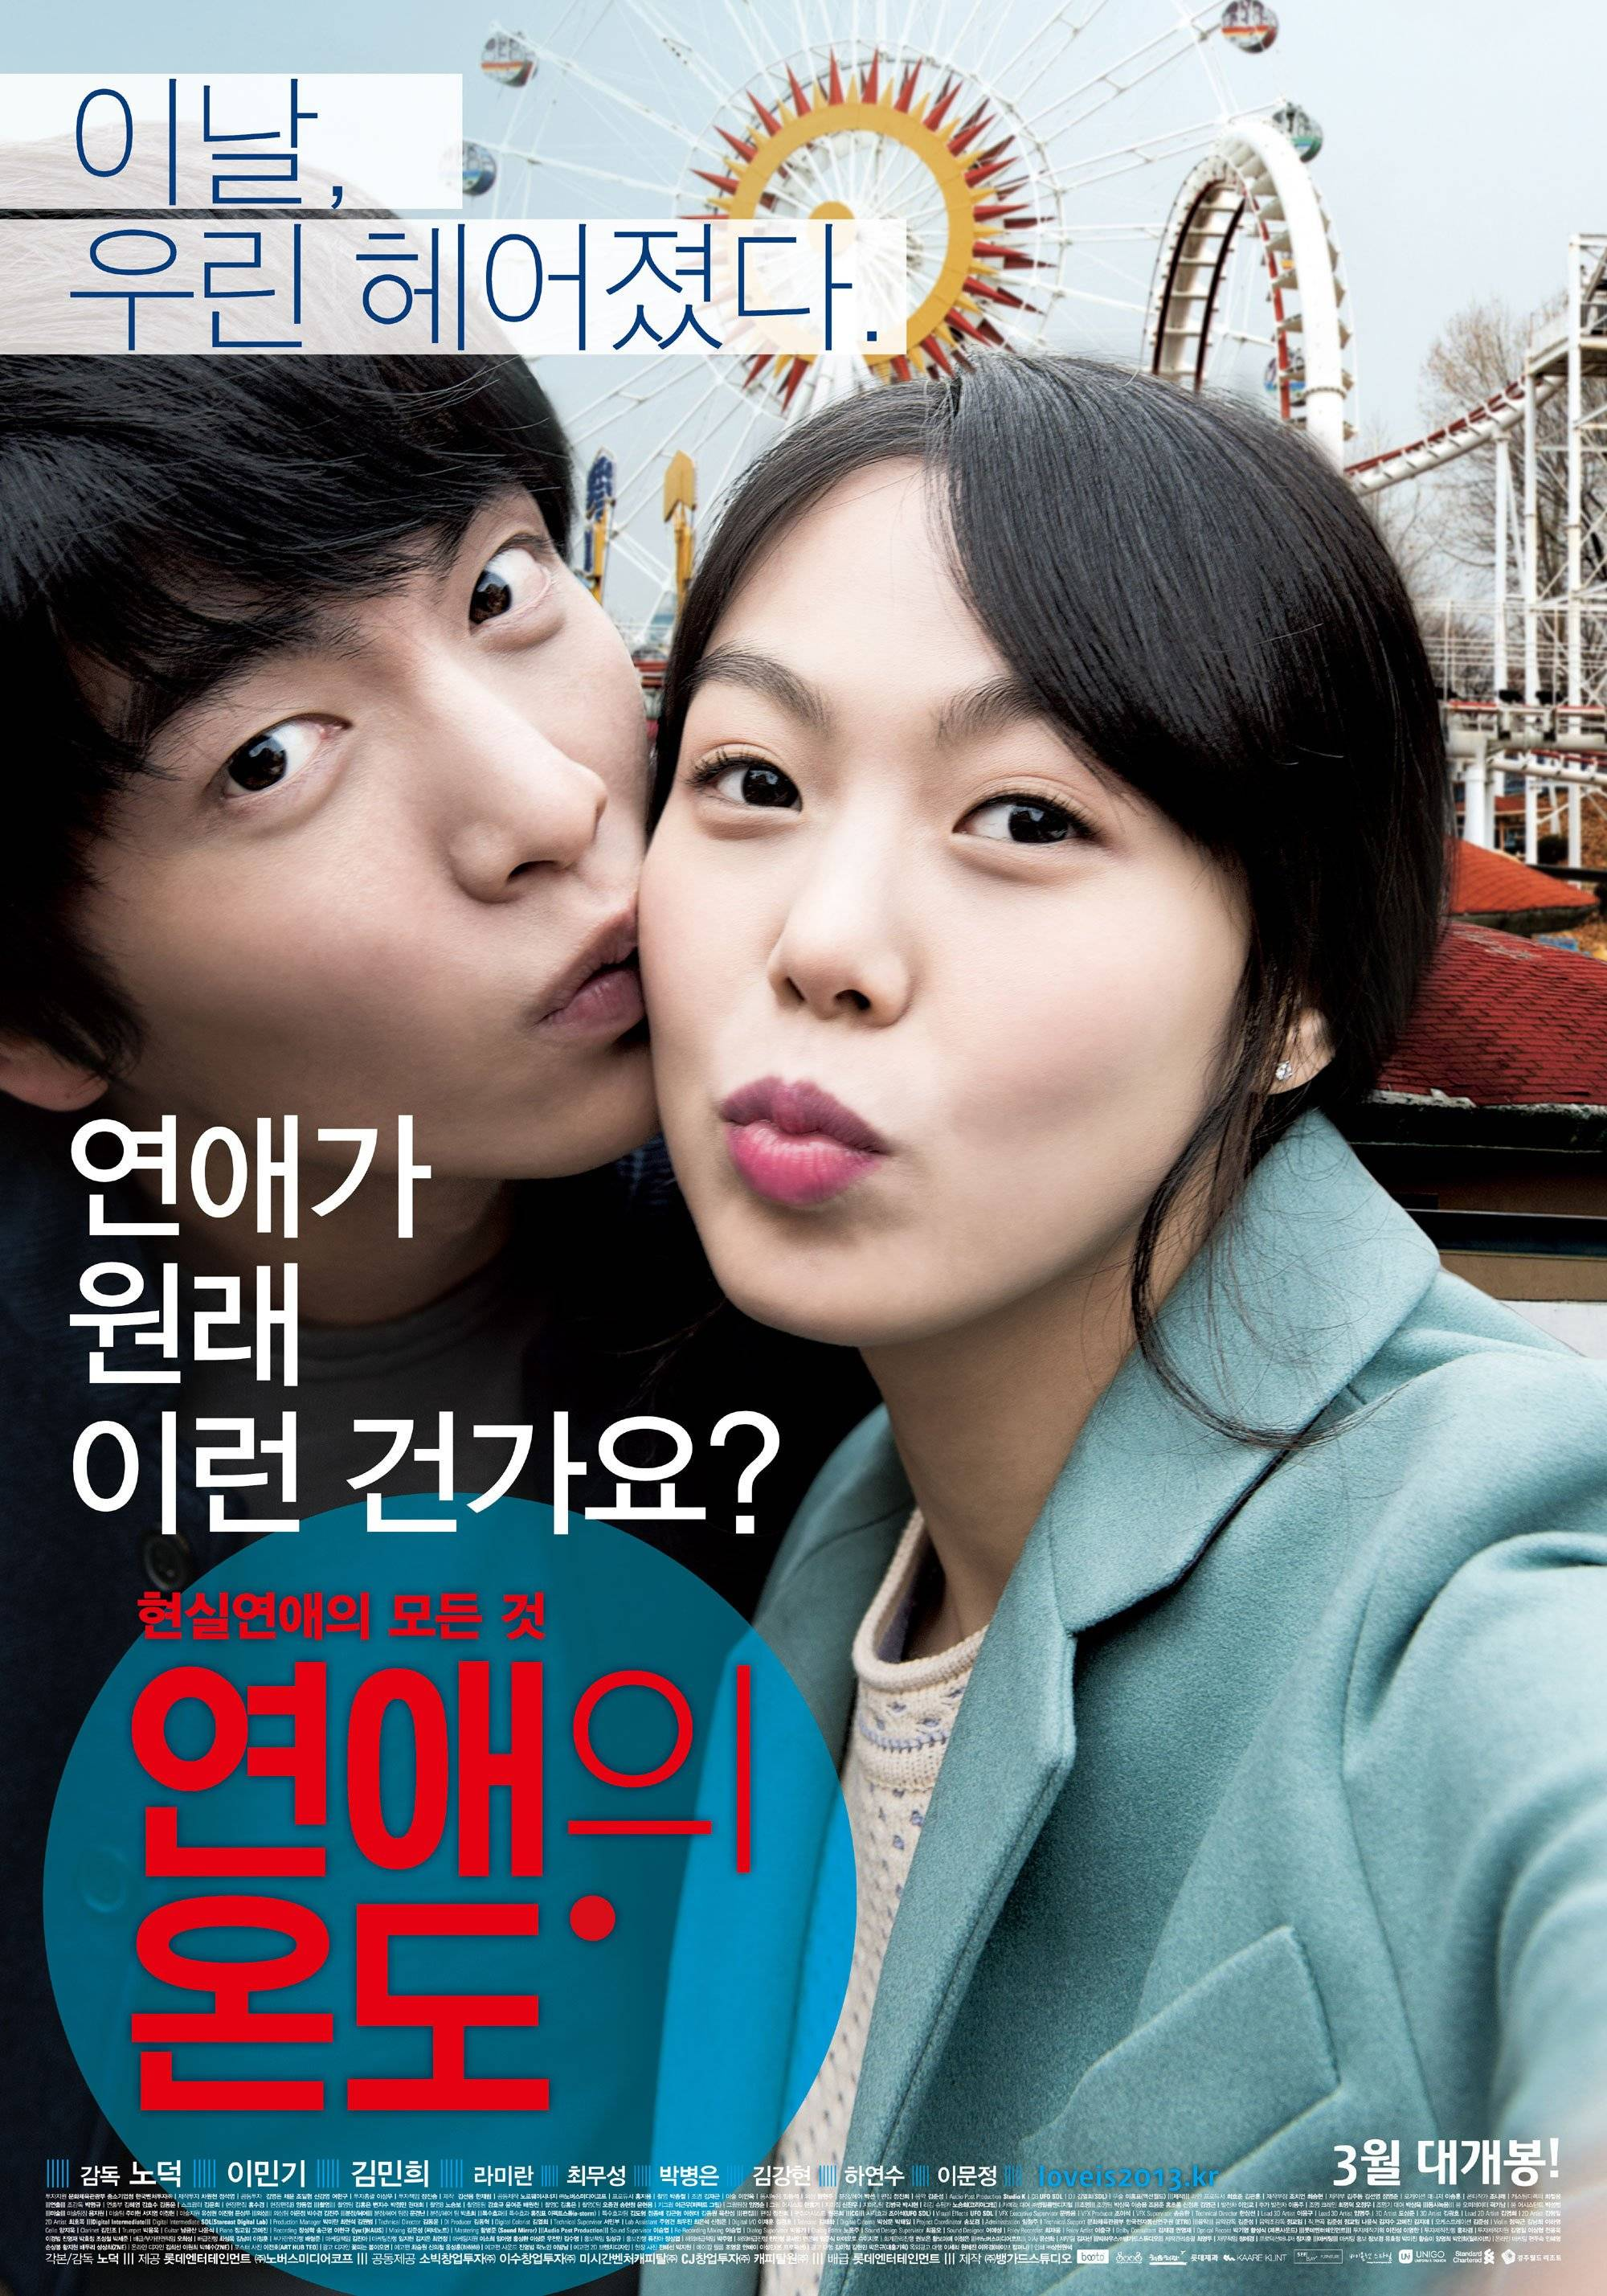 Korean movies opening today 2013/03/21 in Korea